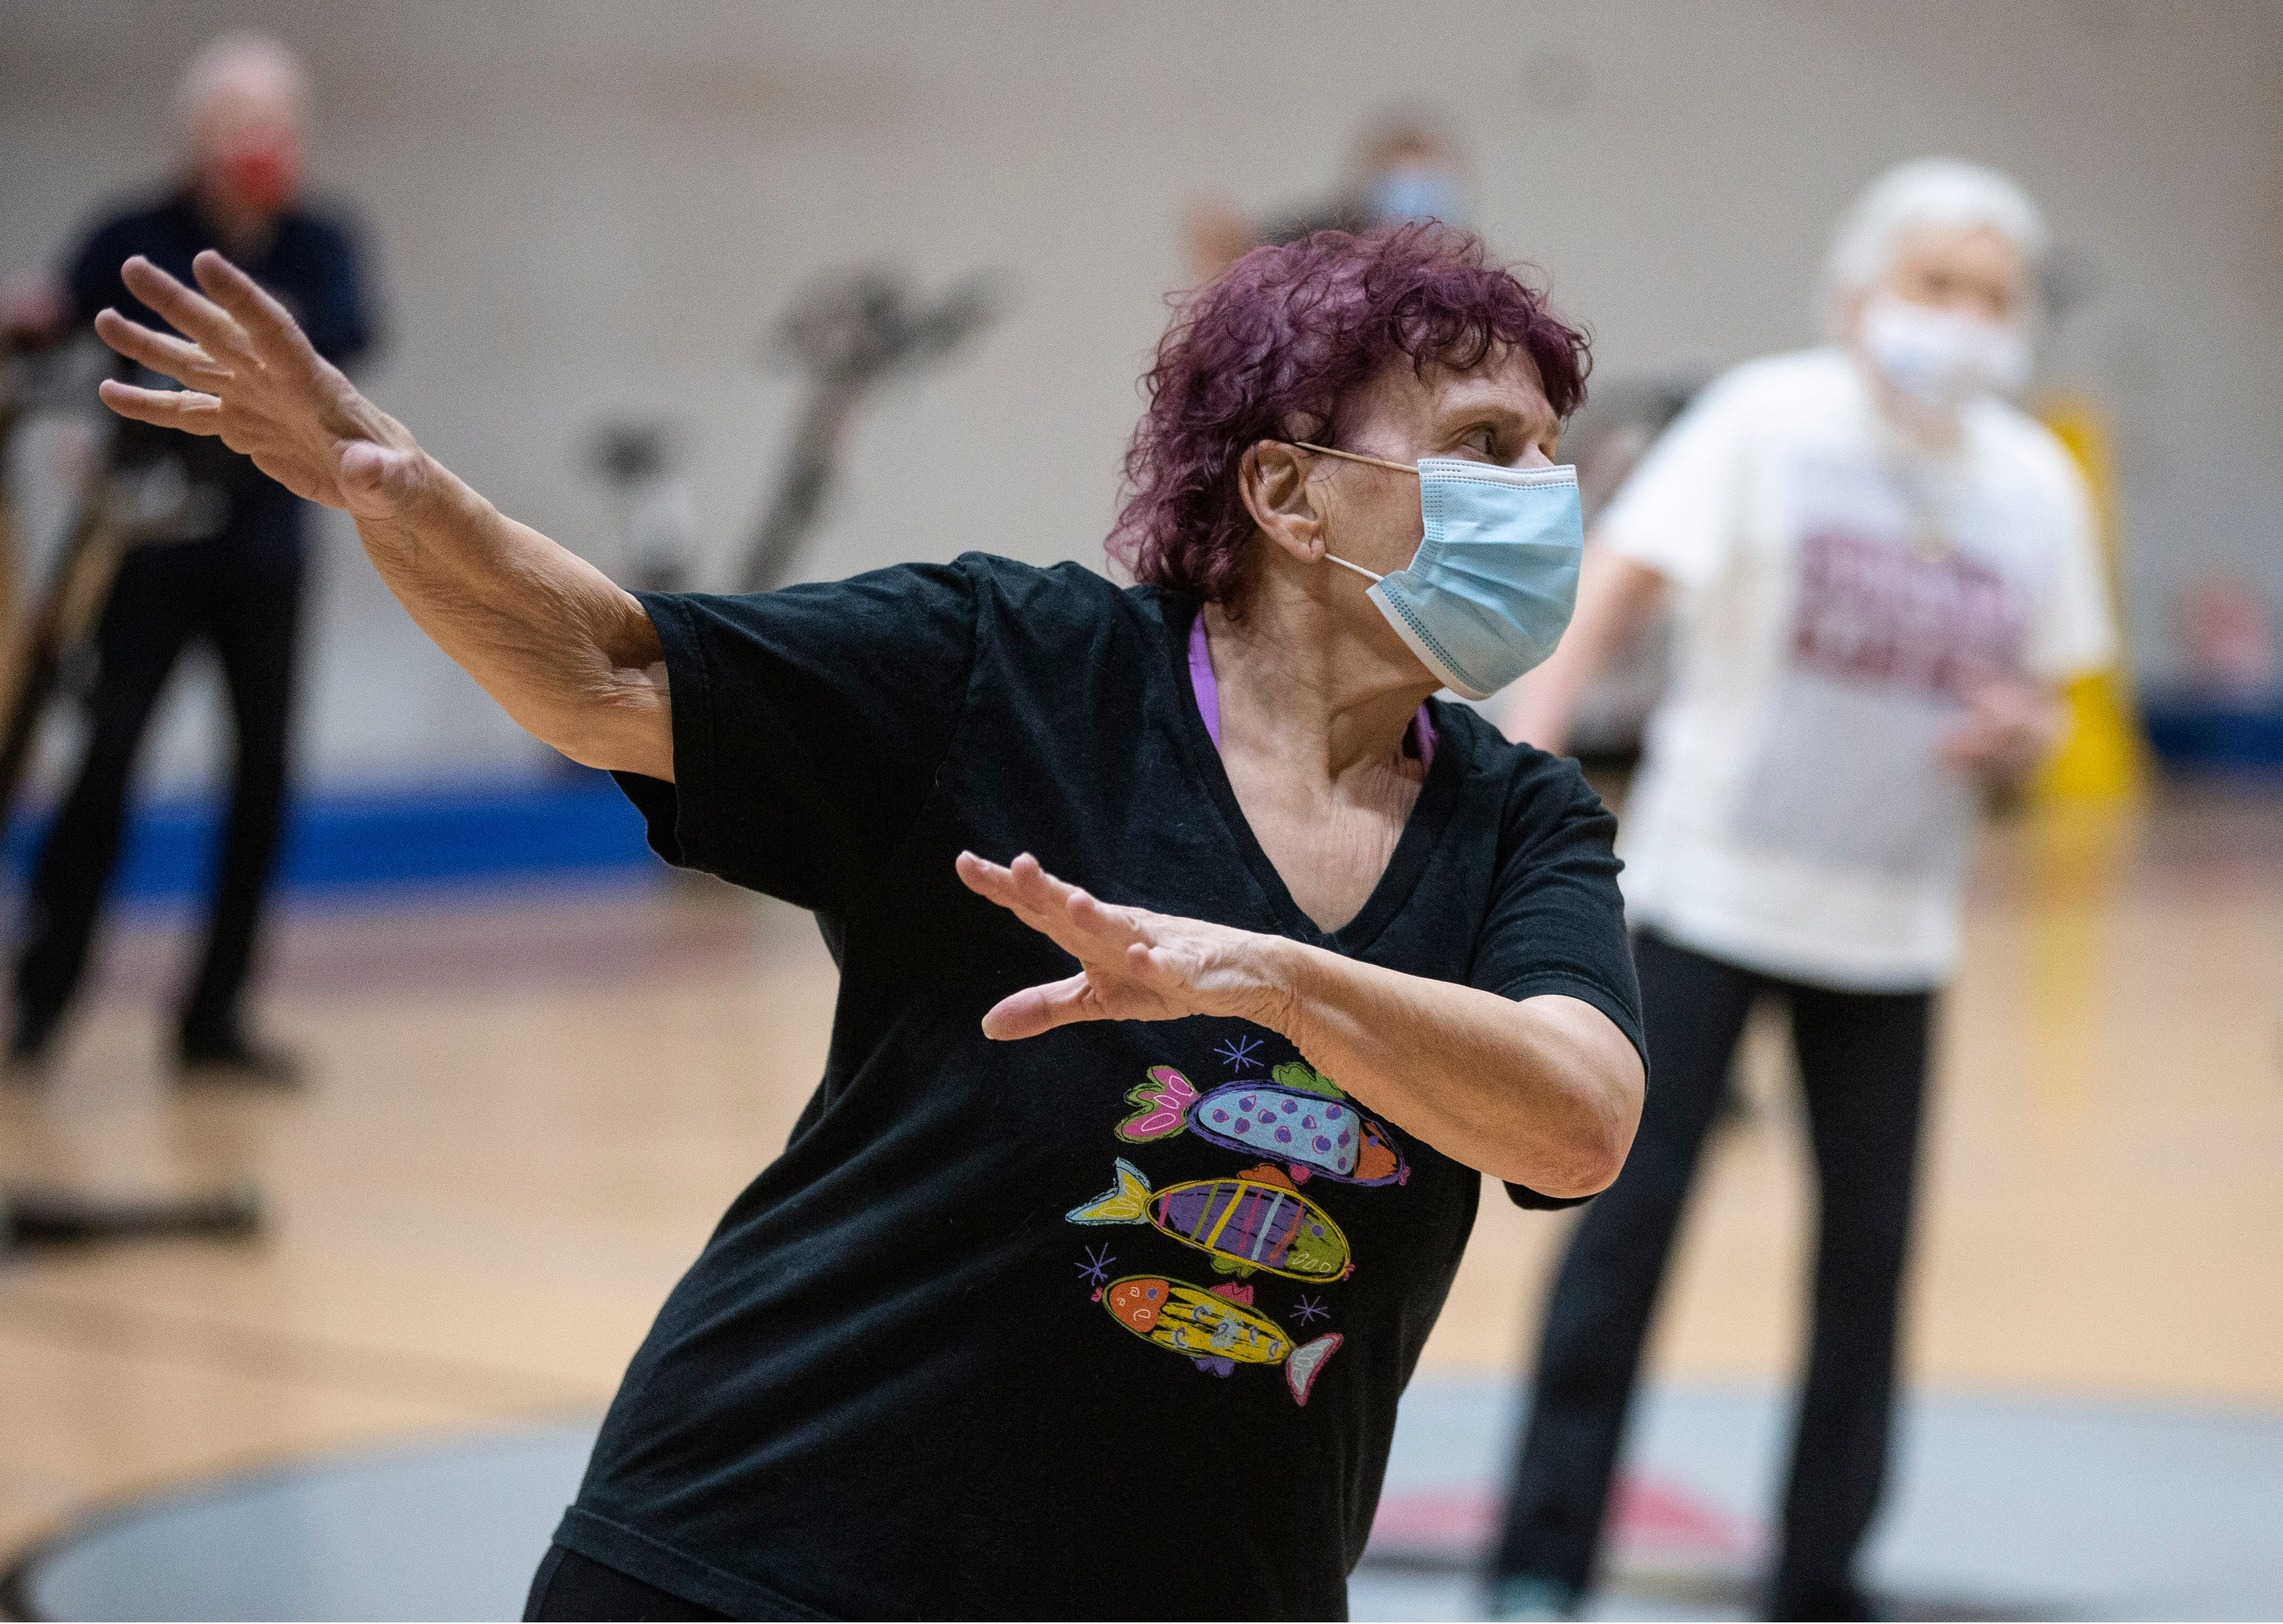 'I'm happy. I'm moving. I'm dancing': Seniors get fit at Red Bank YMCA